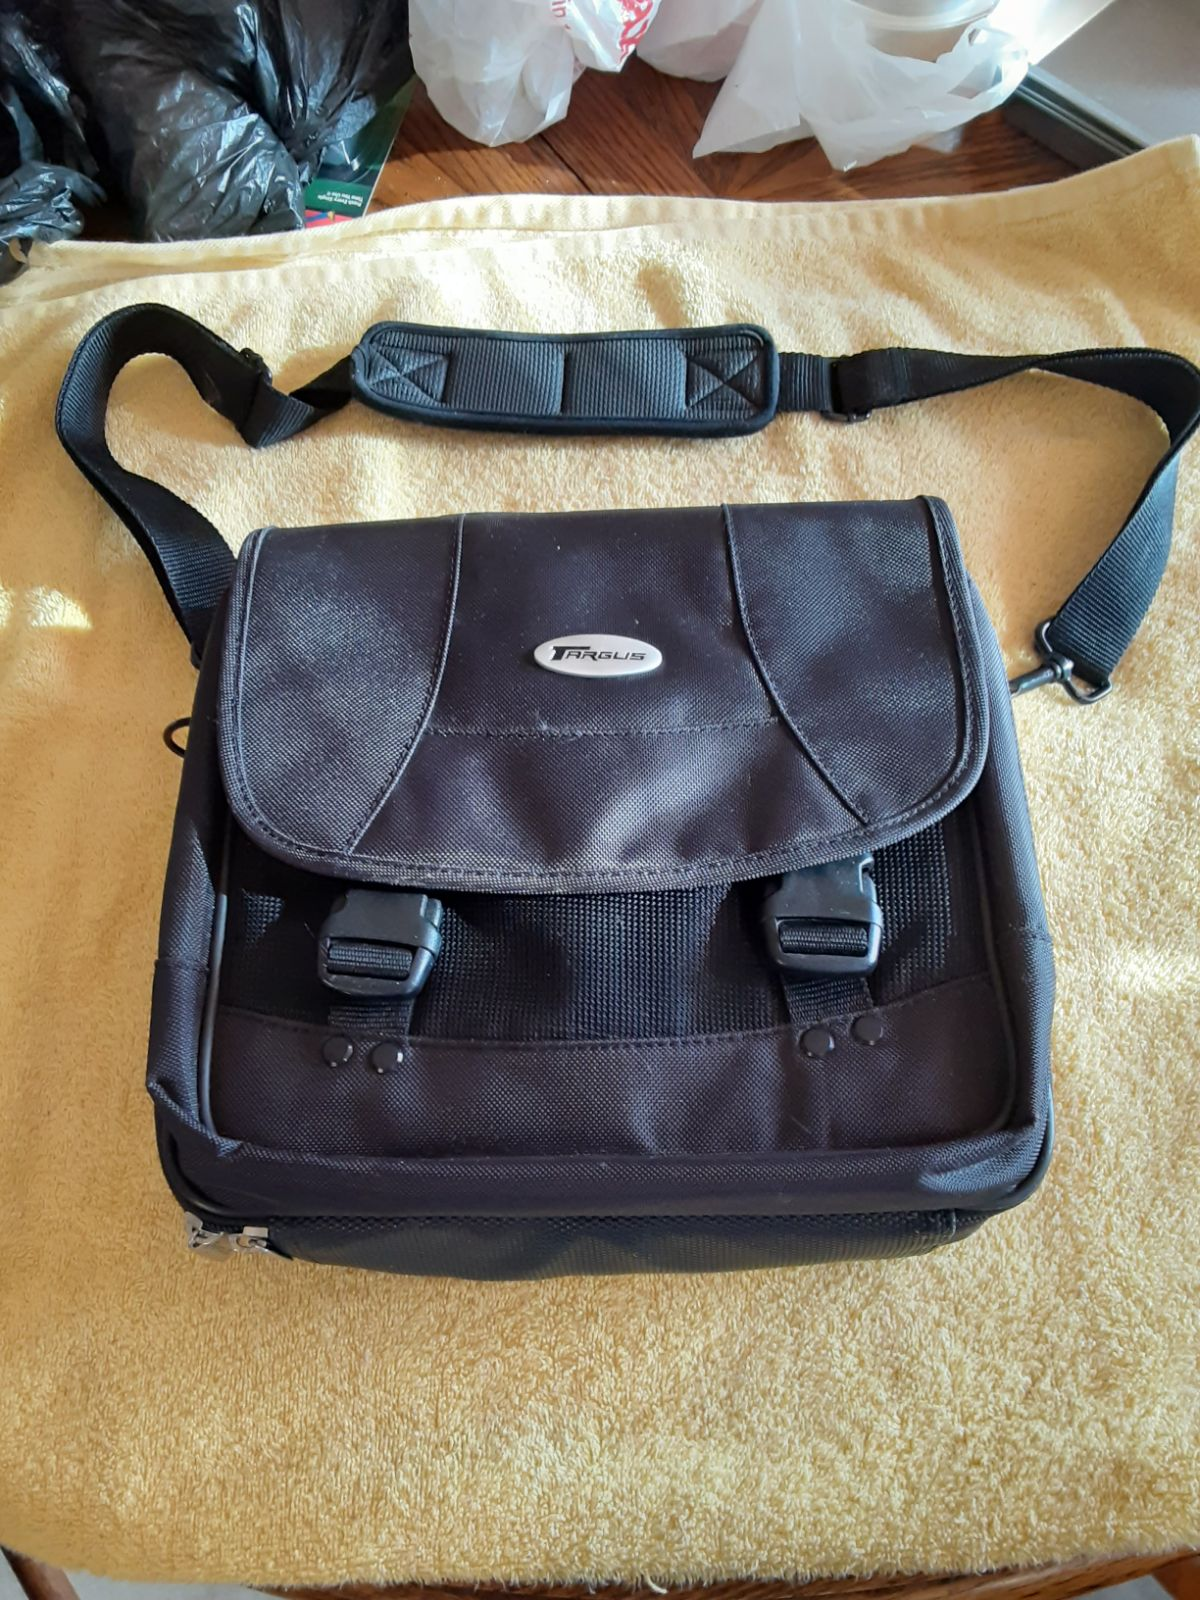 Gaming shoulder bag